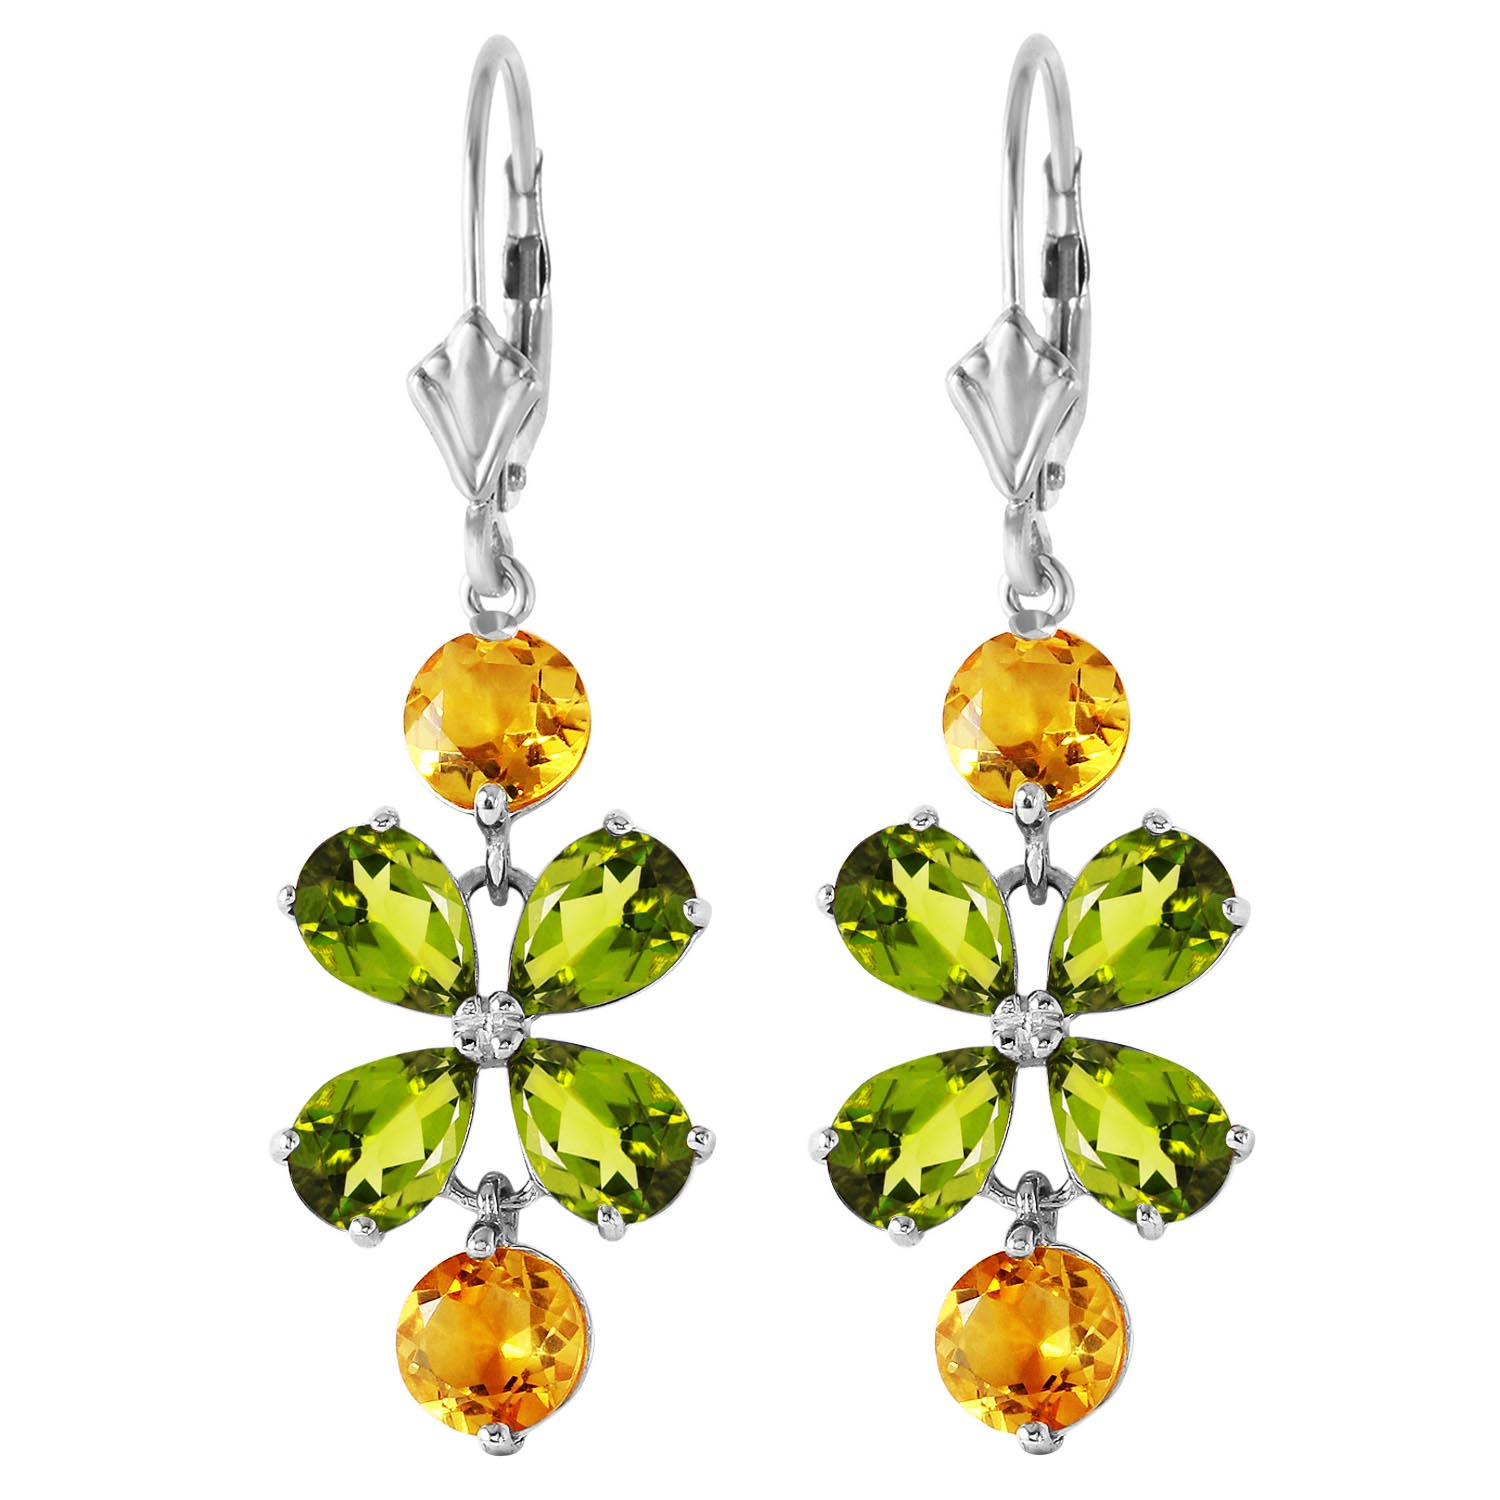 Peridot and Citrine Blossom Drop Earrings 5.32ctw in 9ct White Gold